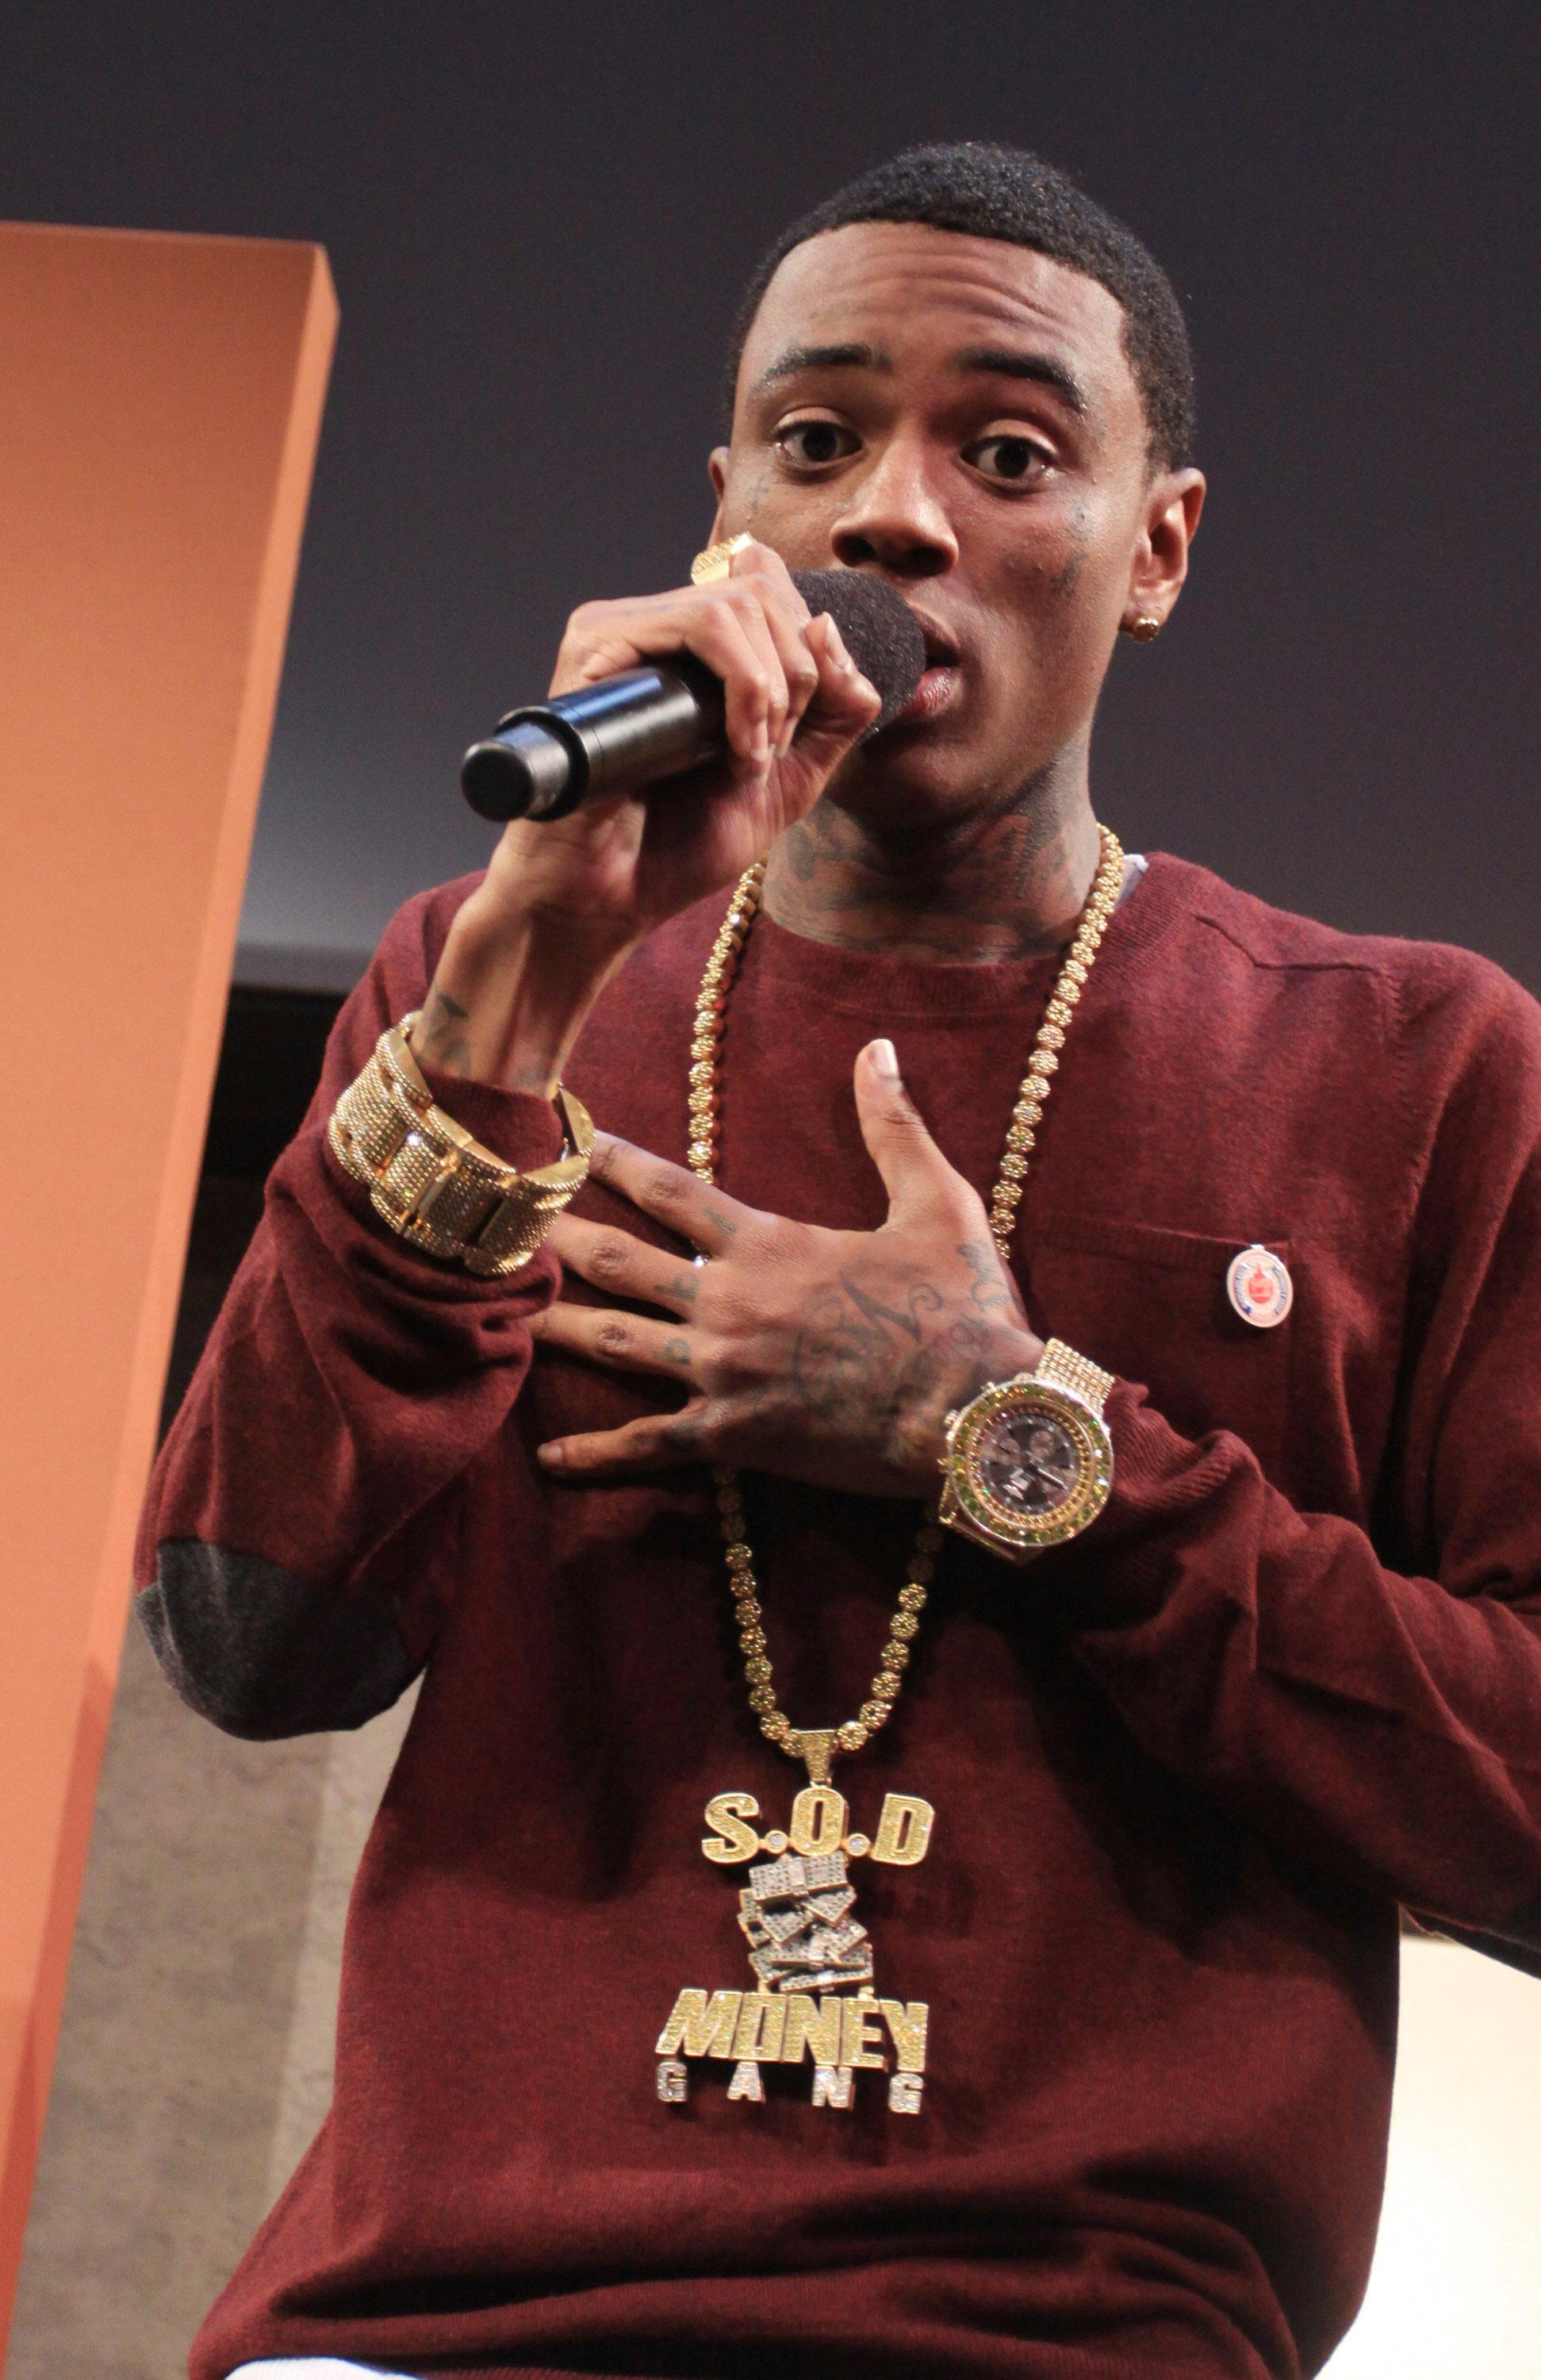 Wall Street Journal Conversations: Soulja Boy Discusses Social Media